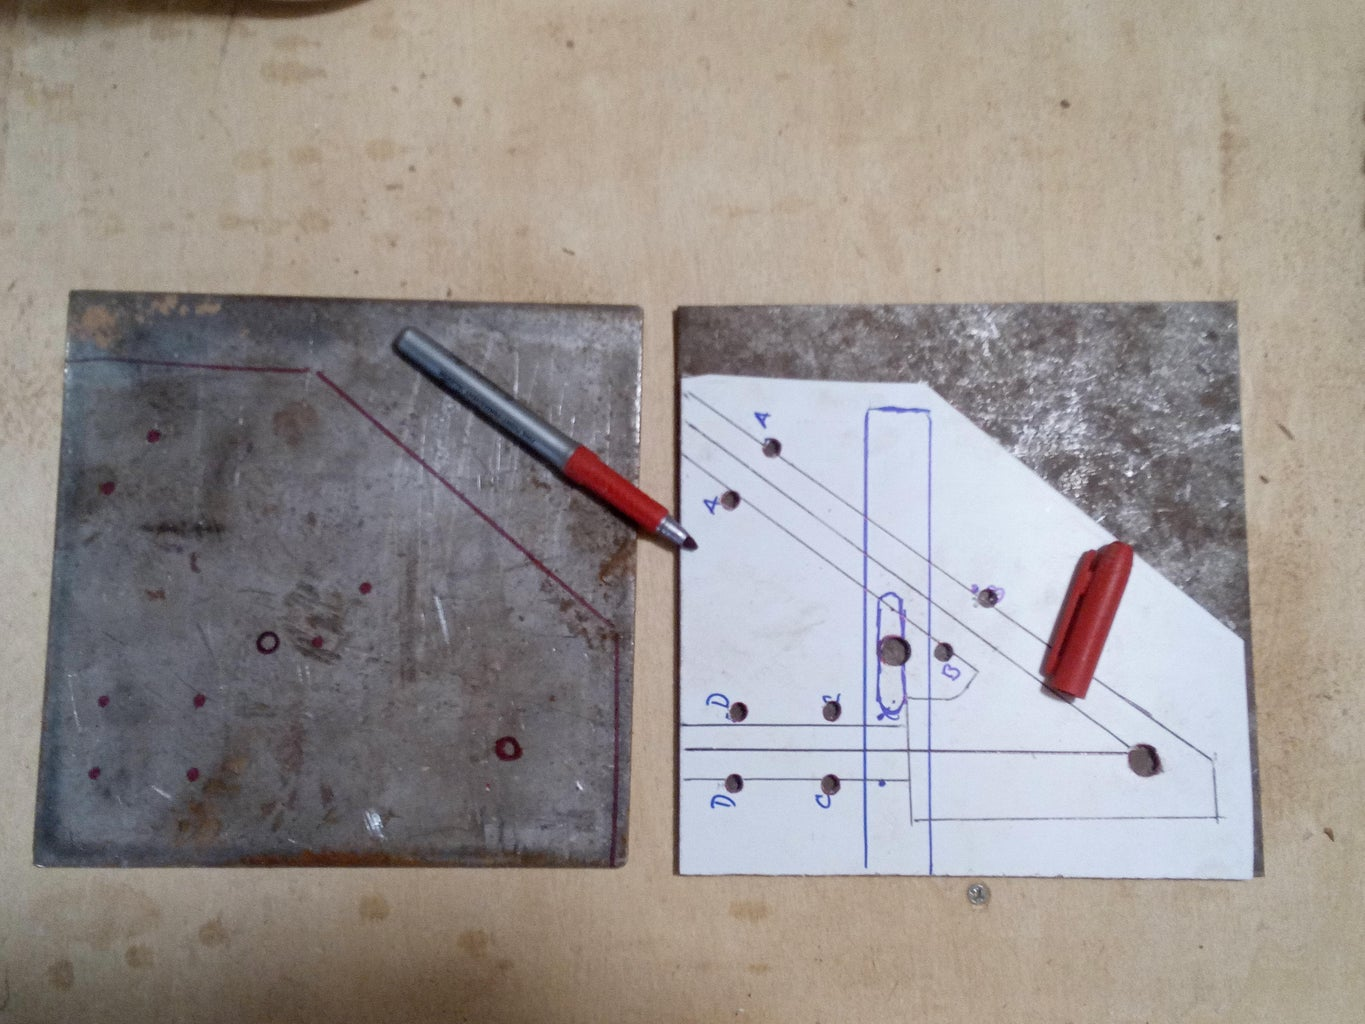 Transfer the Design to the Steel Plates